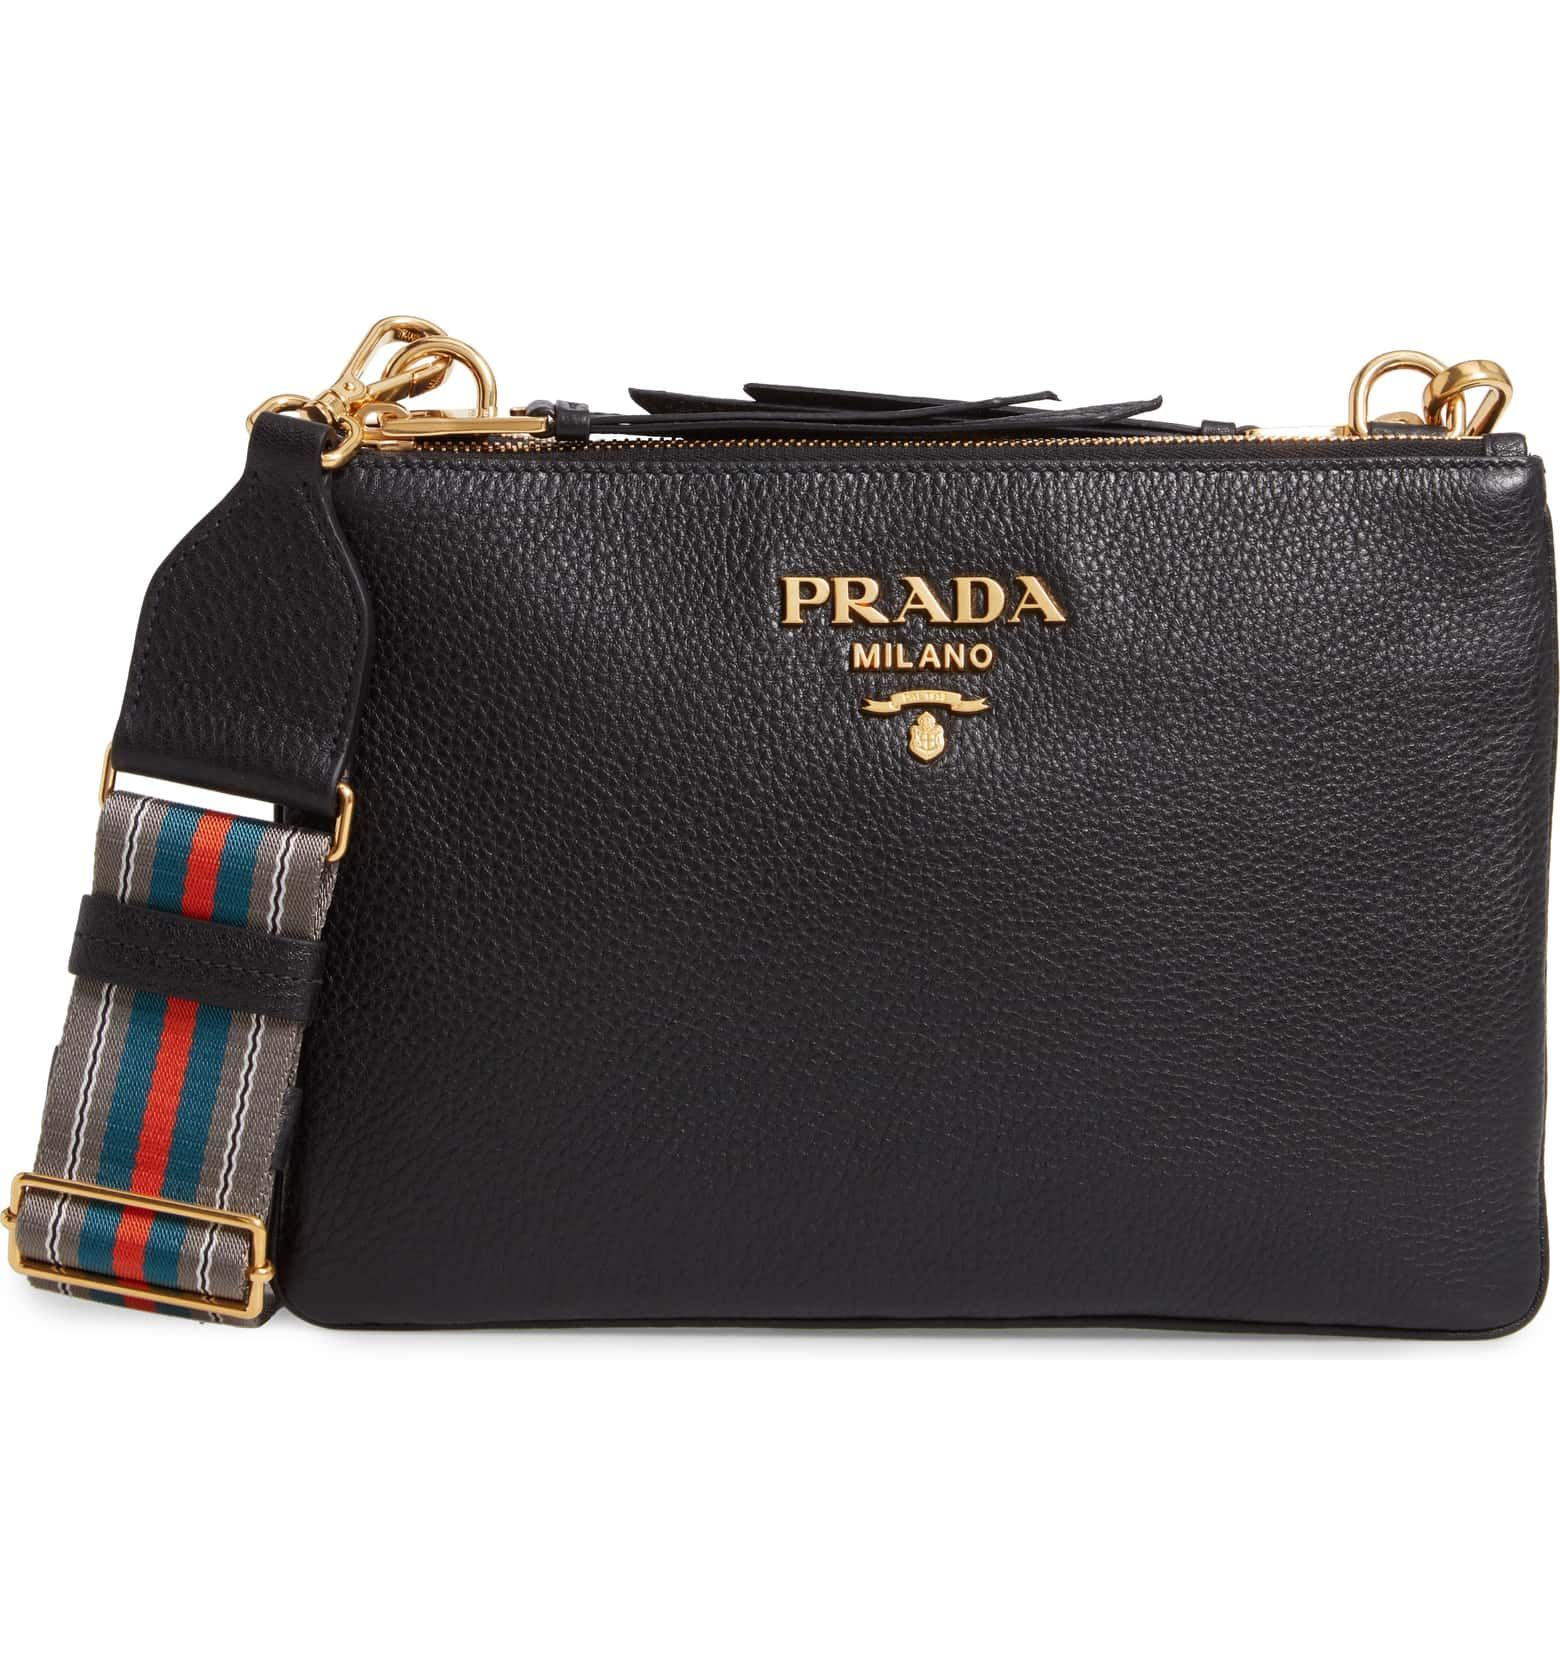 SANDY PRINTED LEATHER CROSSBODY BAG   GUESS.eu   Leather